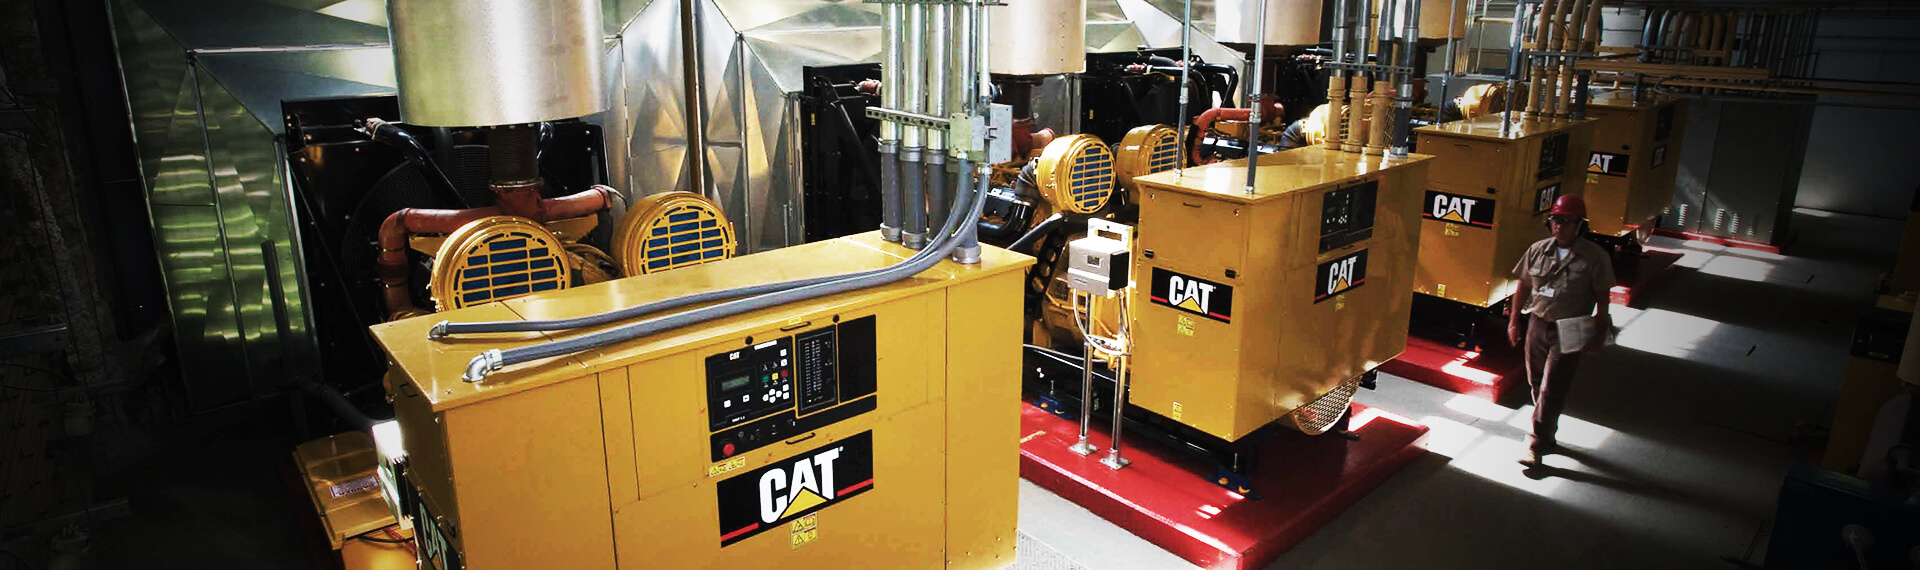 Whayne Walker Cat | Power Systems -Power Equipment -Generators